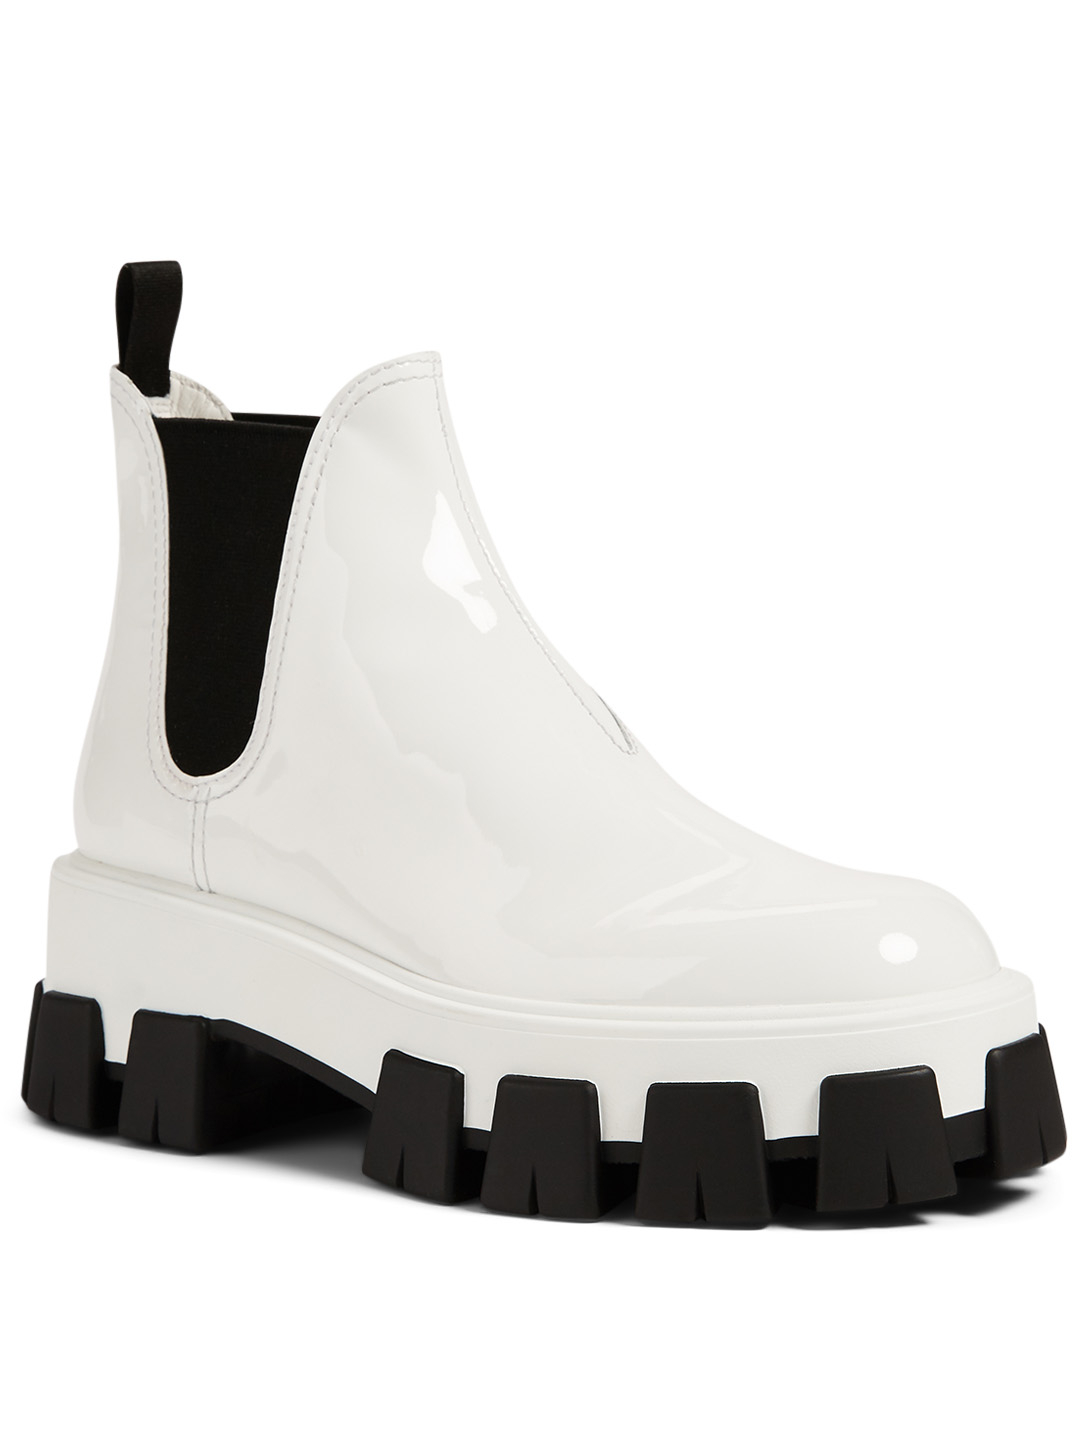 PRADA Patent Leather Platform Chelsea Boots Women's White